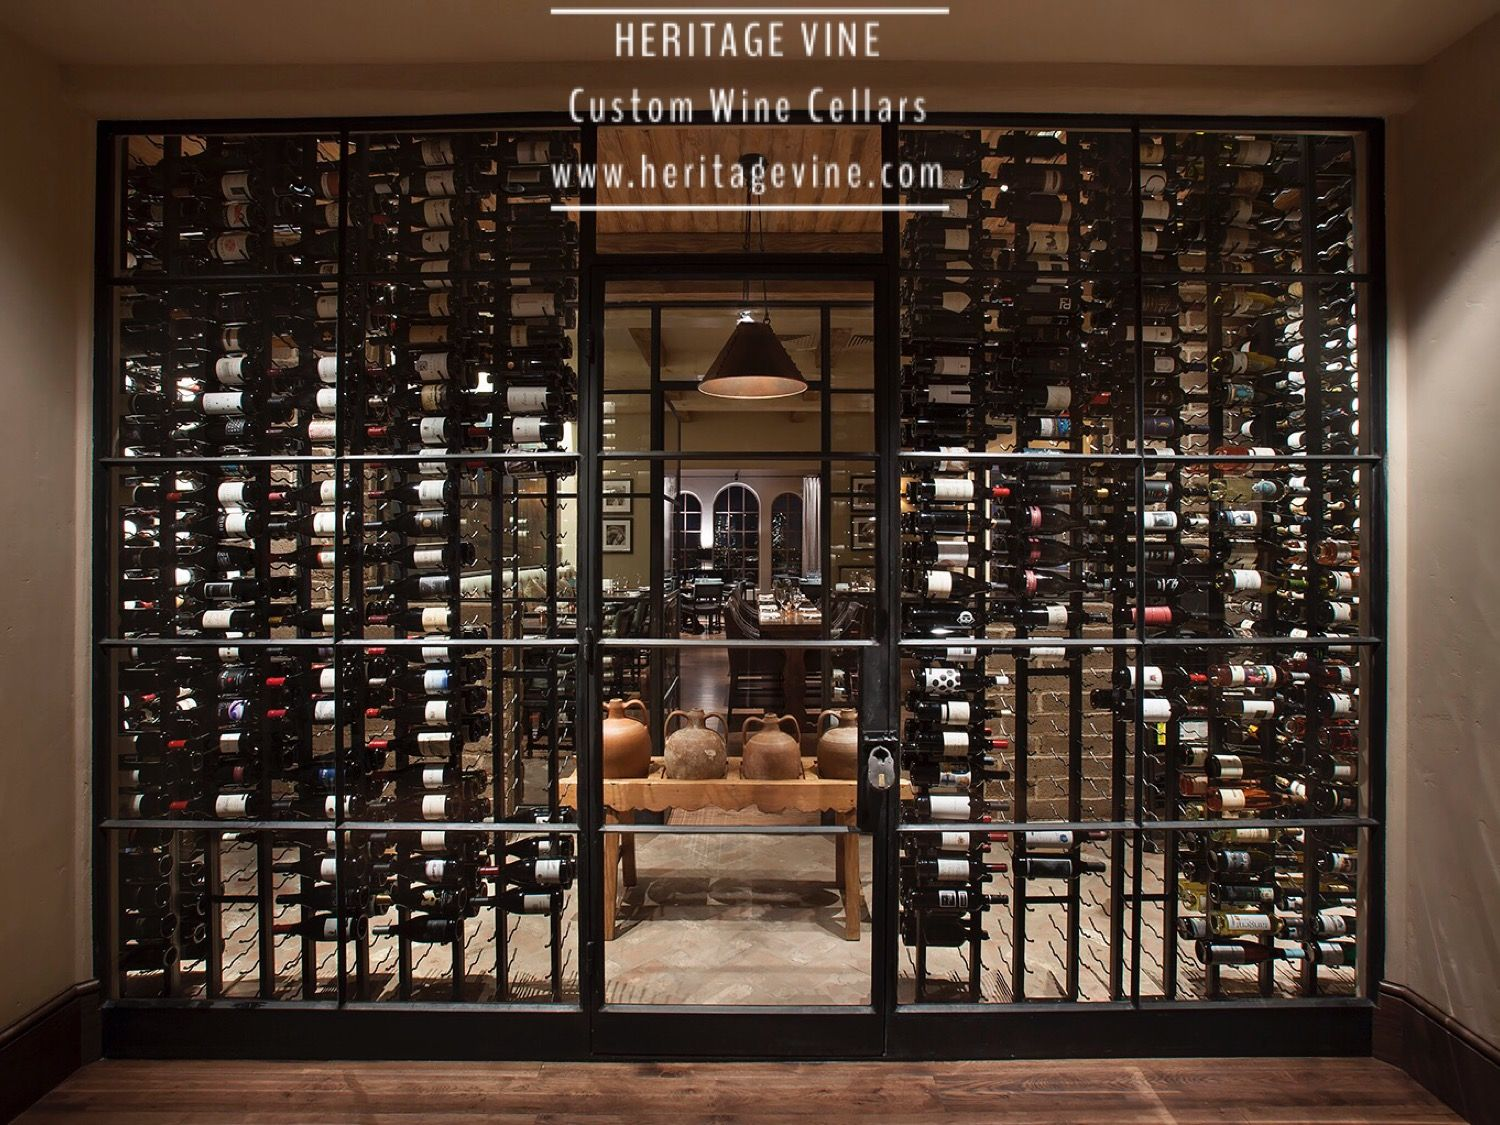 Custom Wine Cellars Custom Wine Cellars Cellar Design Wine Cellar Design